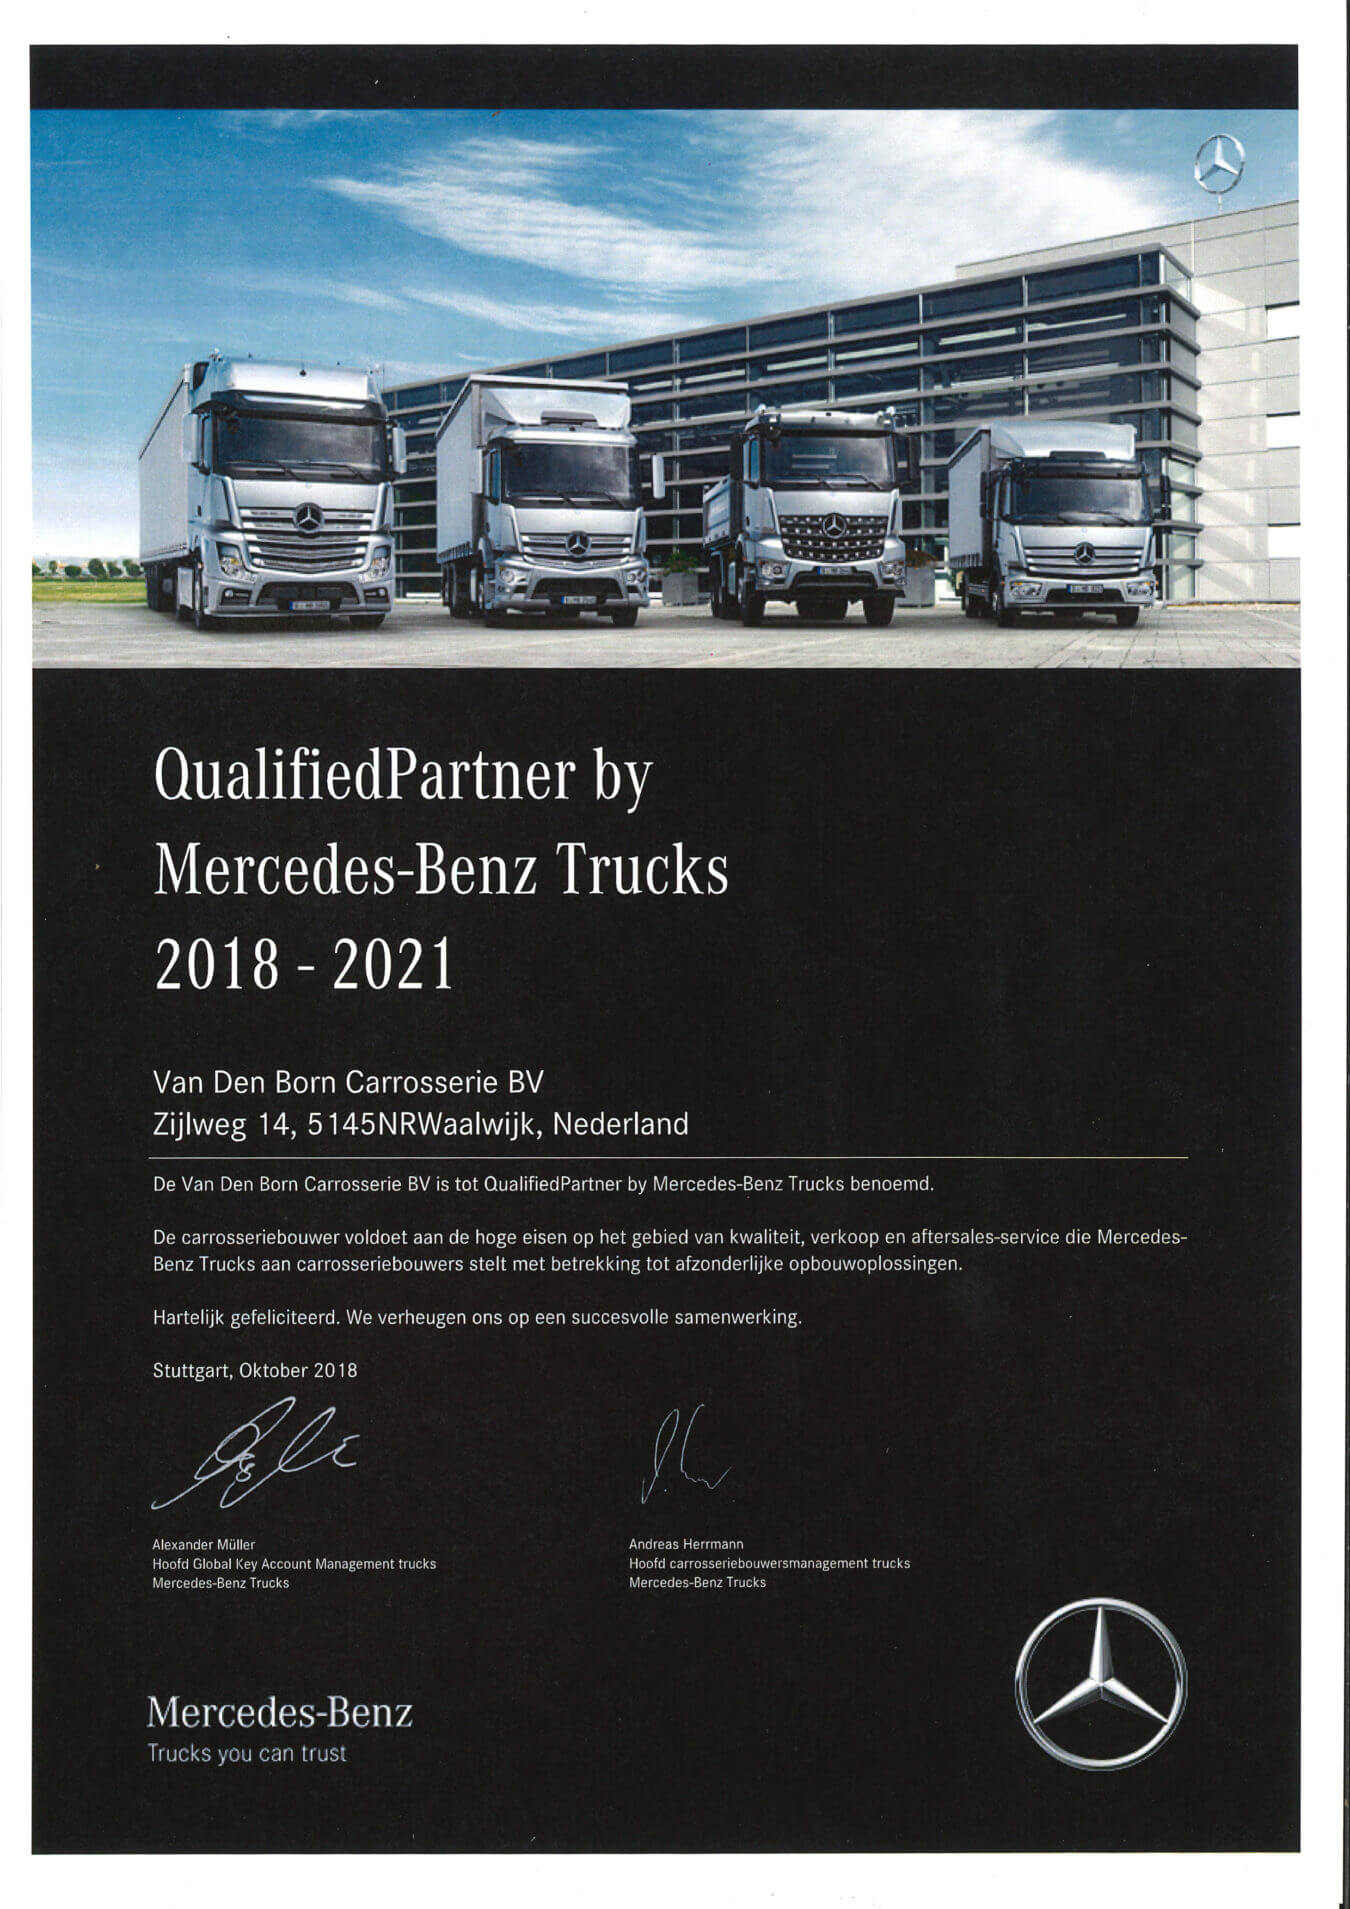 qualifiedpartner mercedes-benz